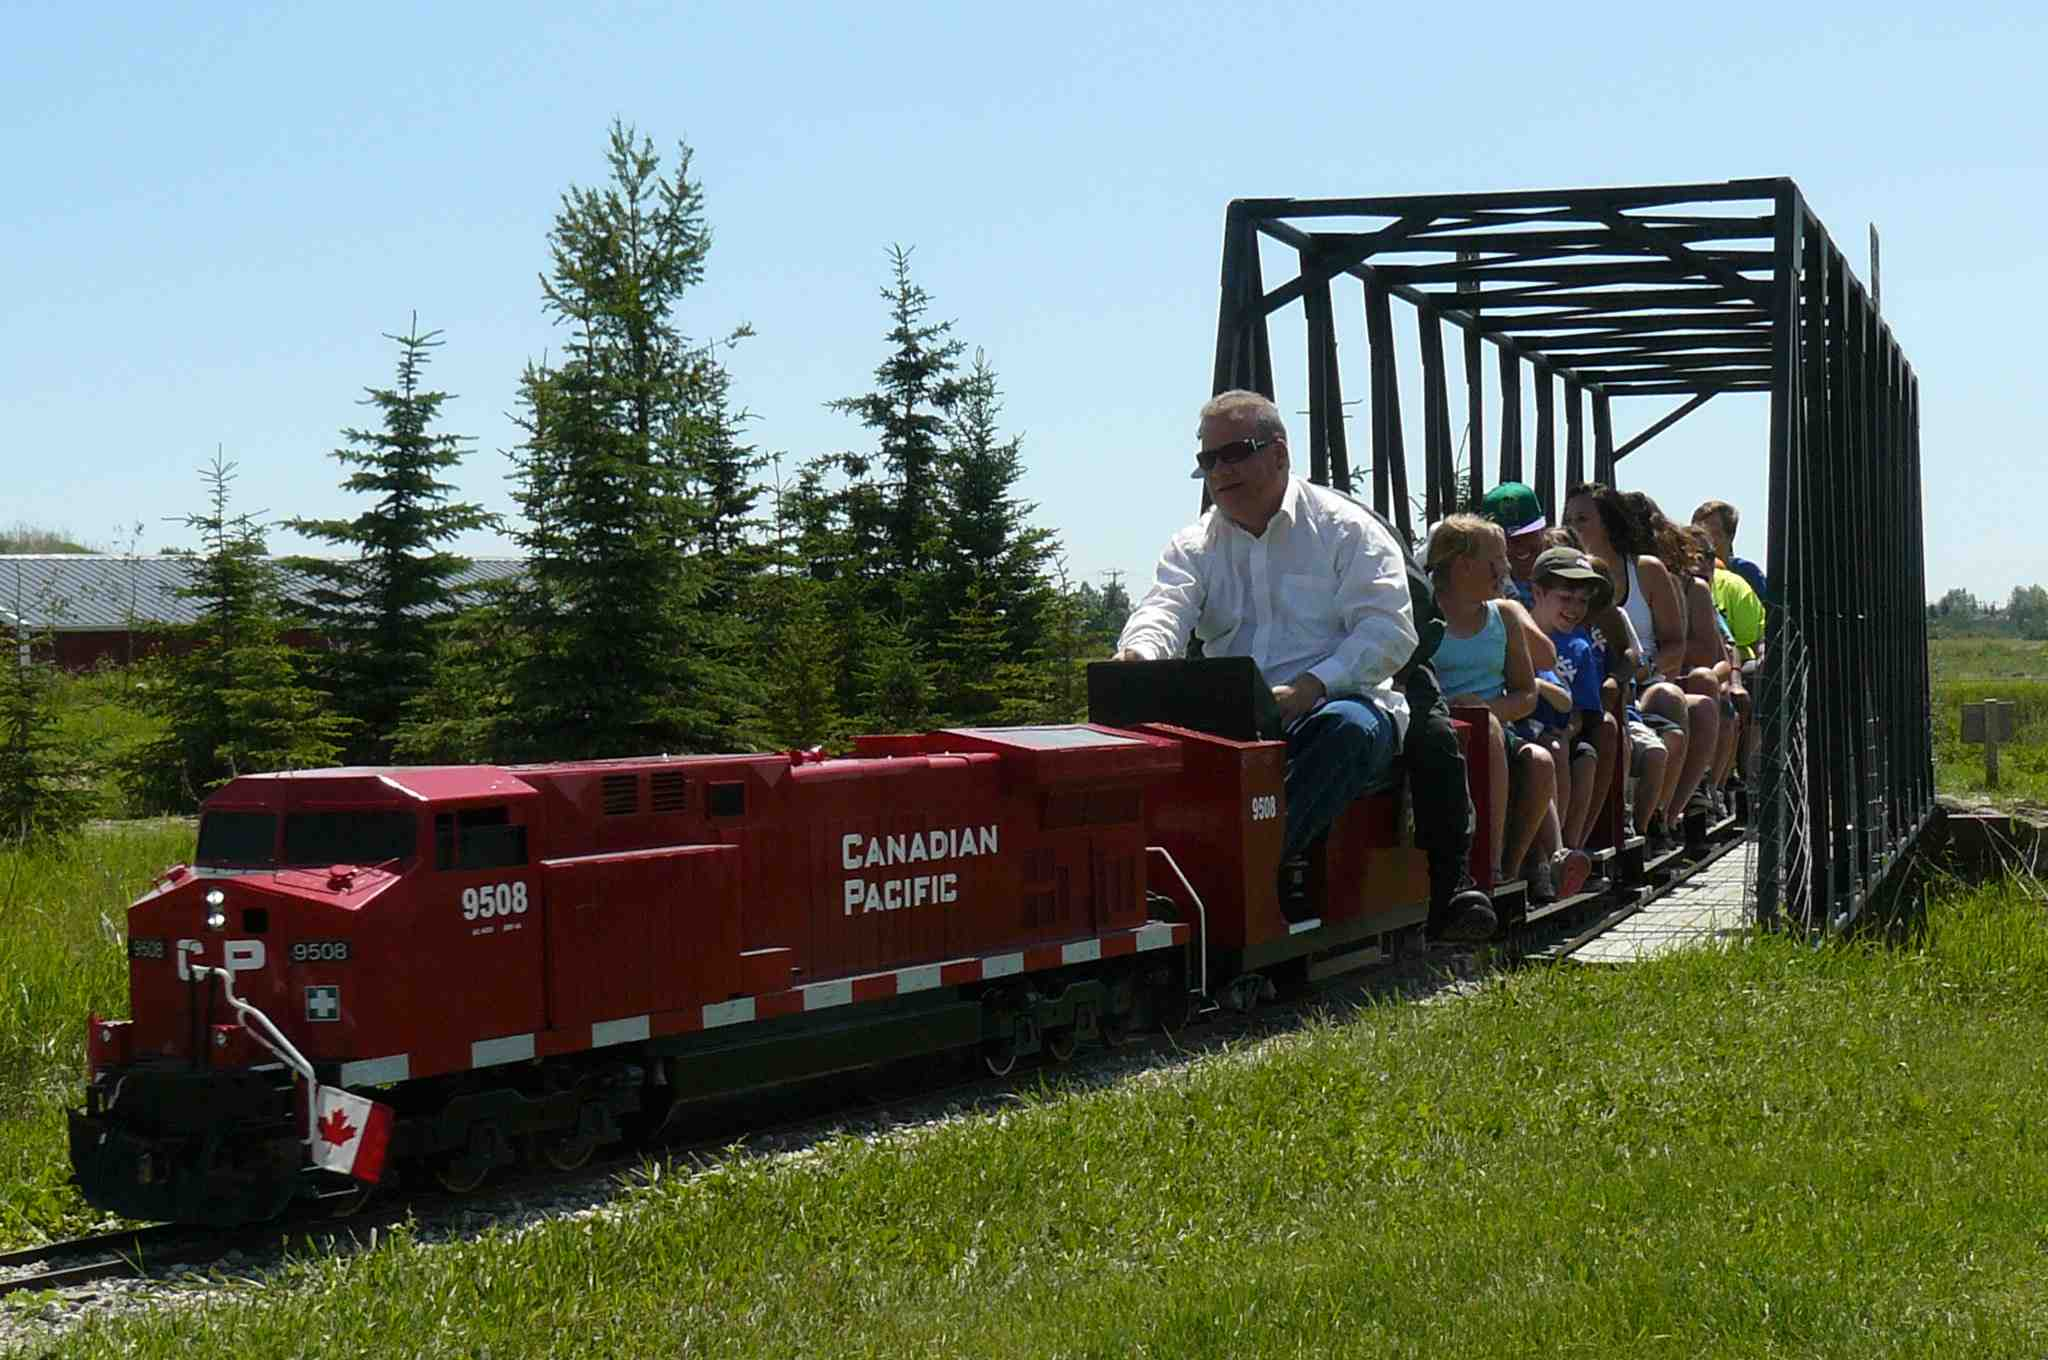 Canadian Pacific loco hauling passengers at Iron Horse Park